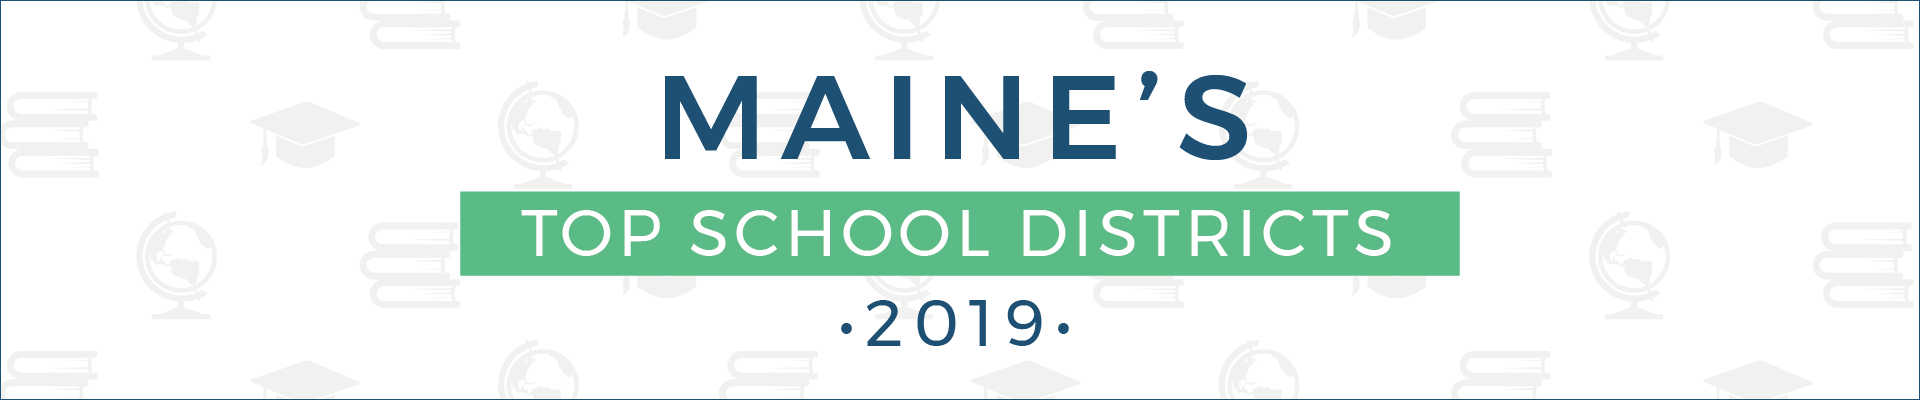 top school districts, 2019 - maine - banner